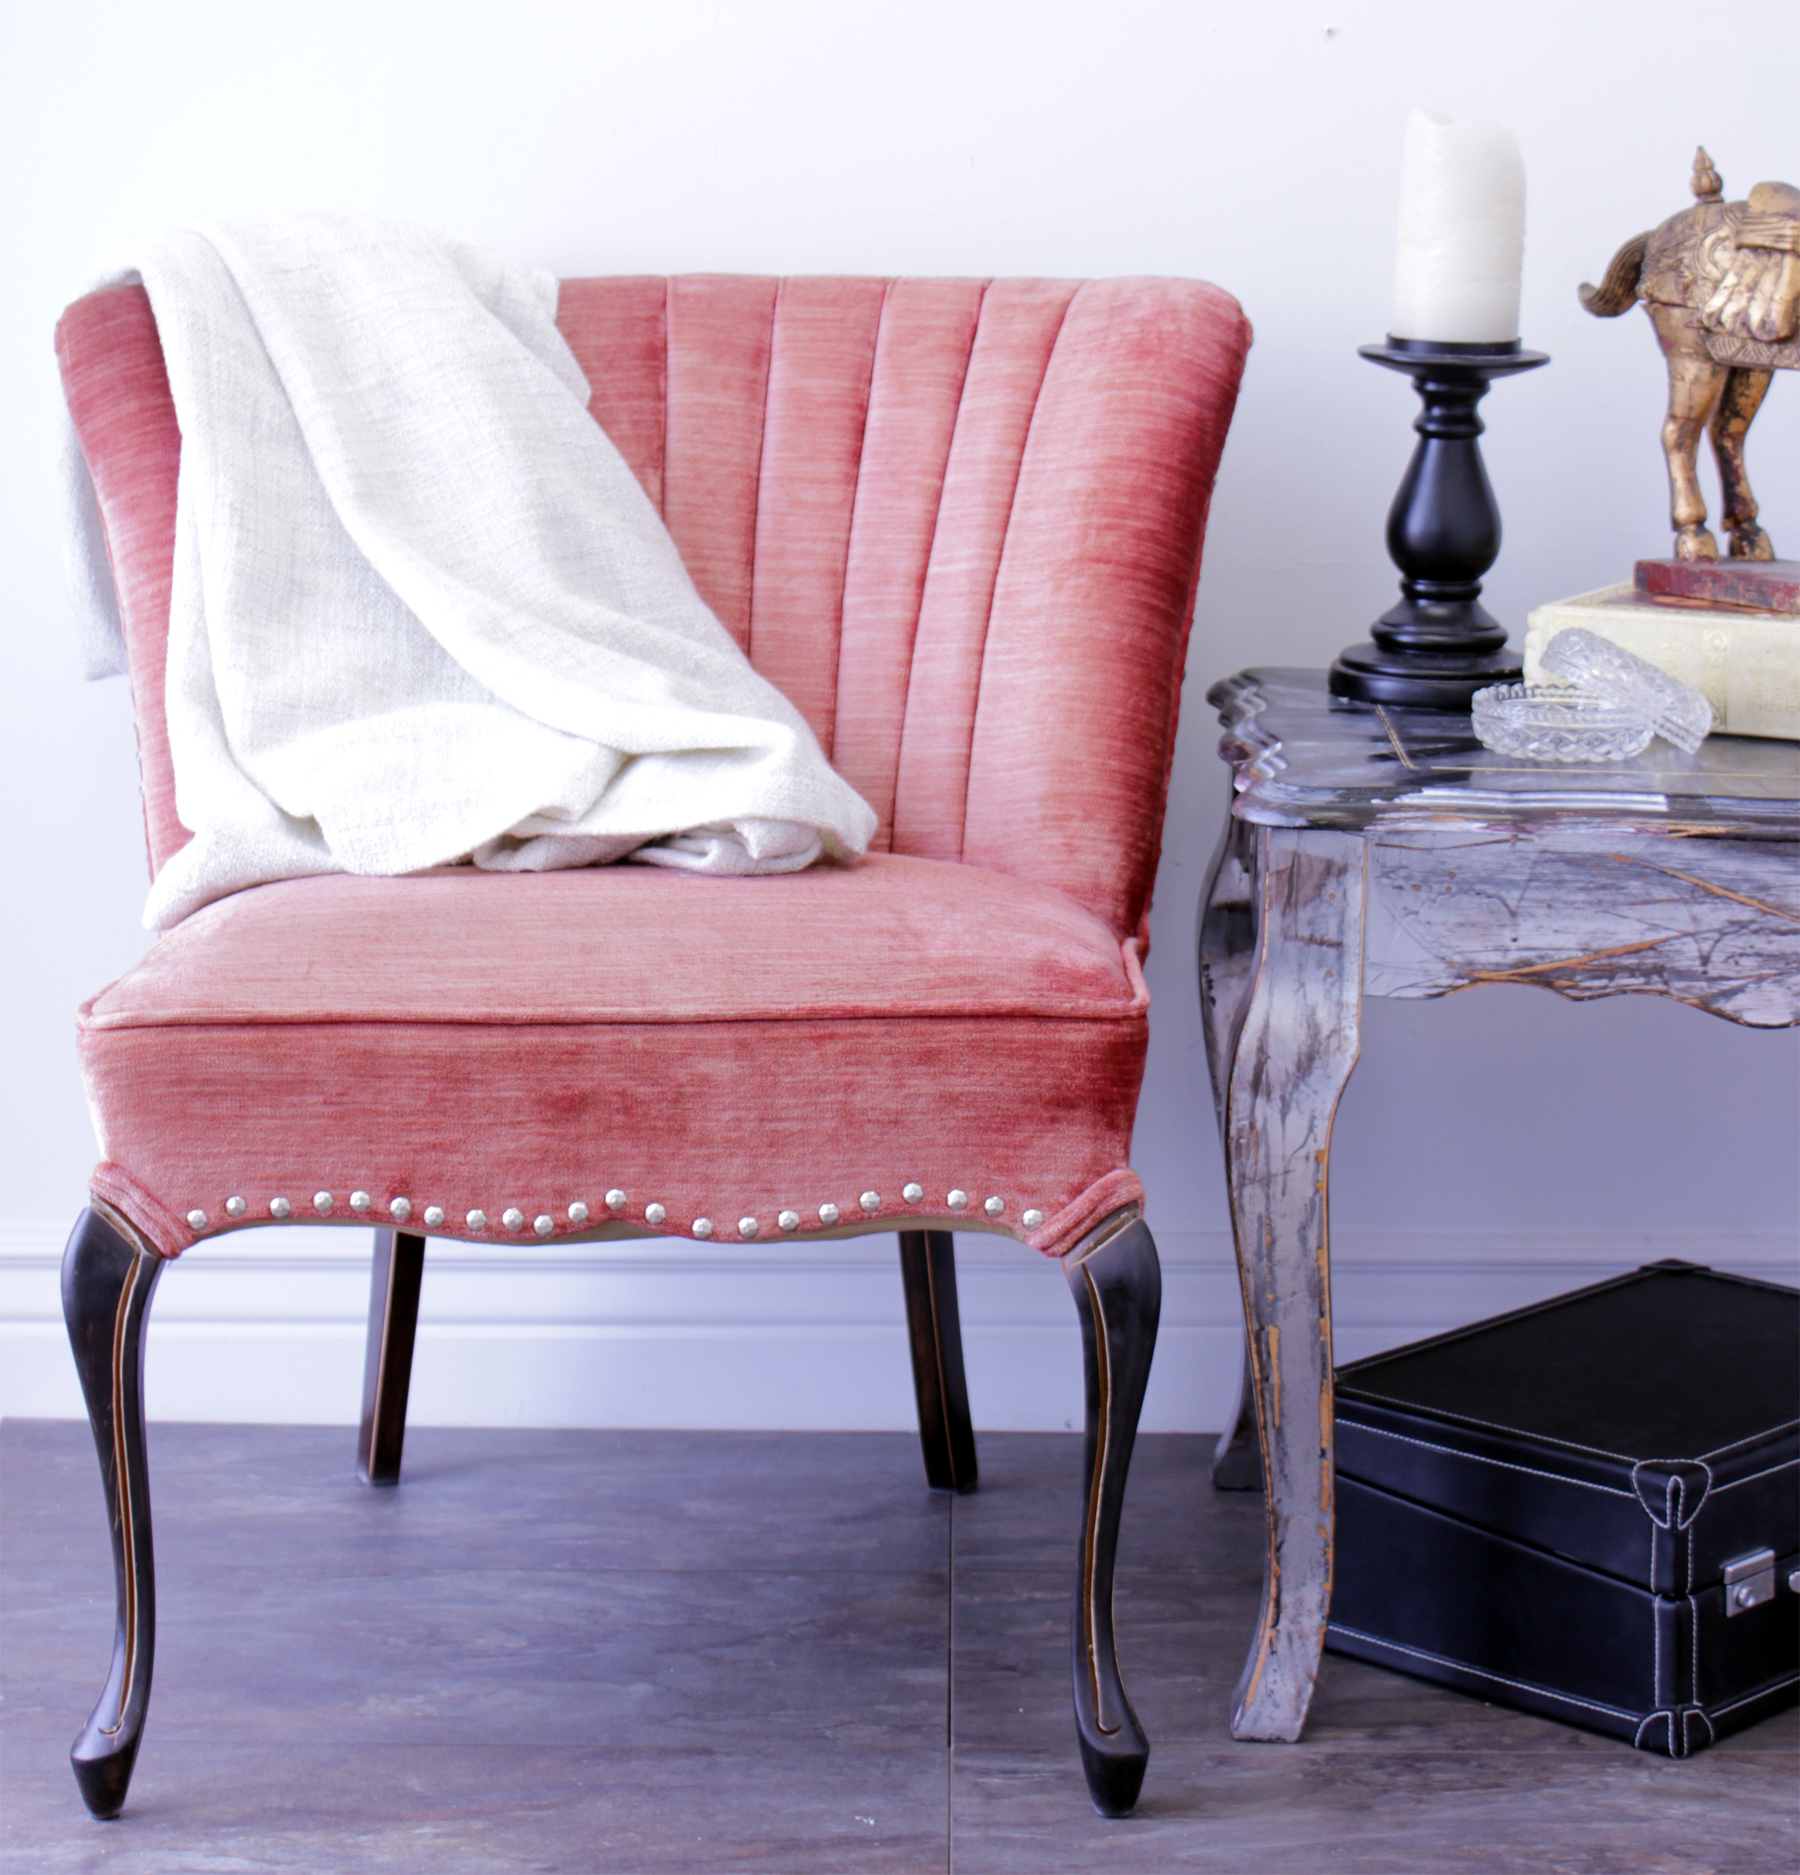 diy french provincial chair update marc and mandy show